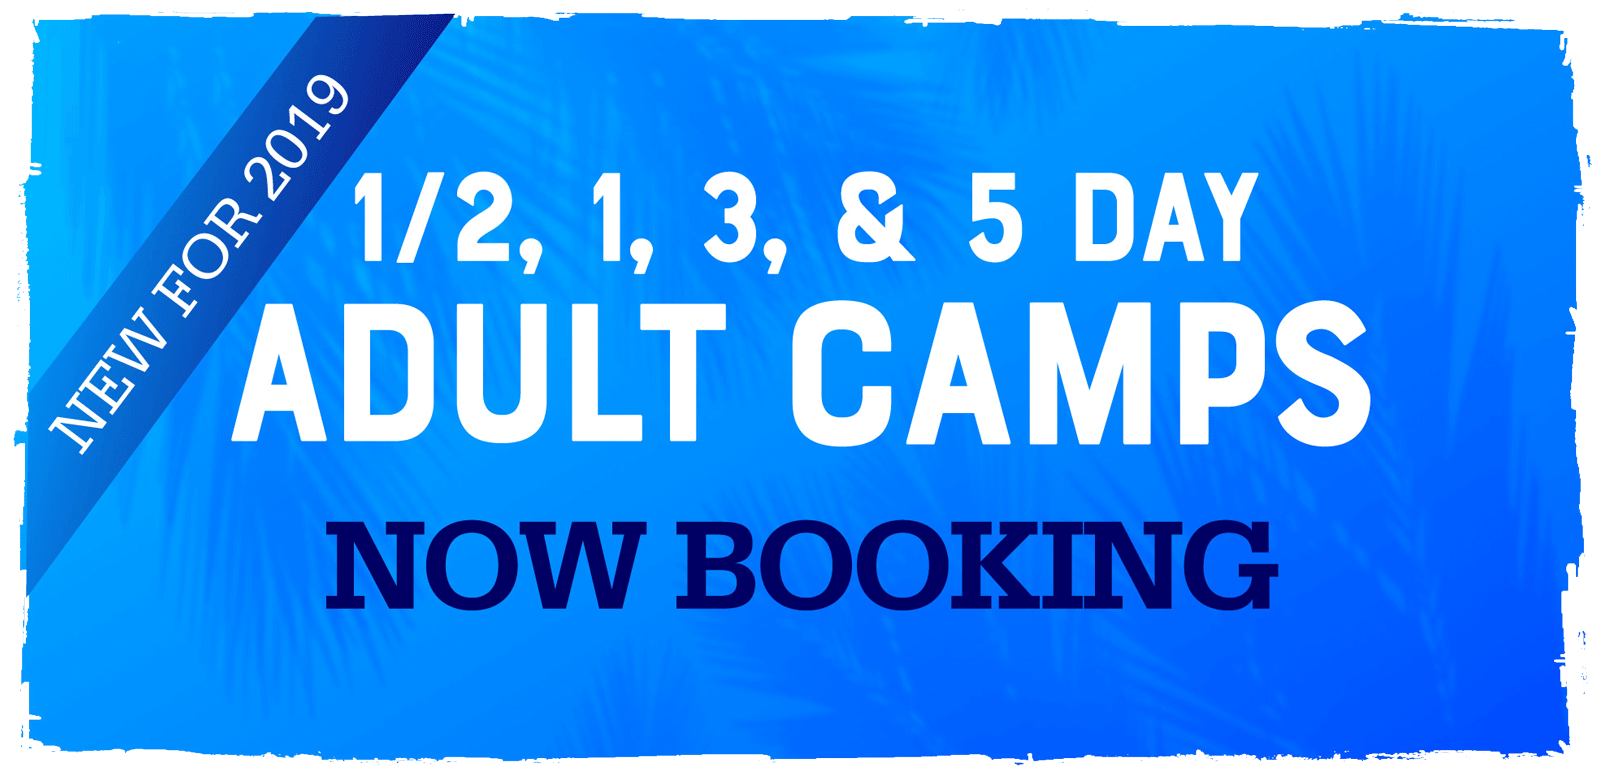 1/2, 1, 3, and 5 day adult camps now booking